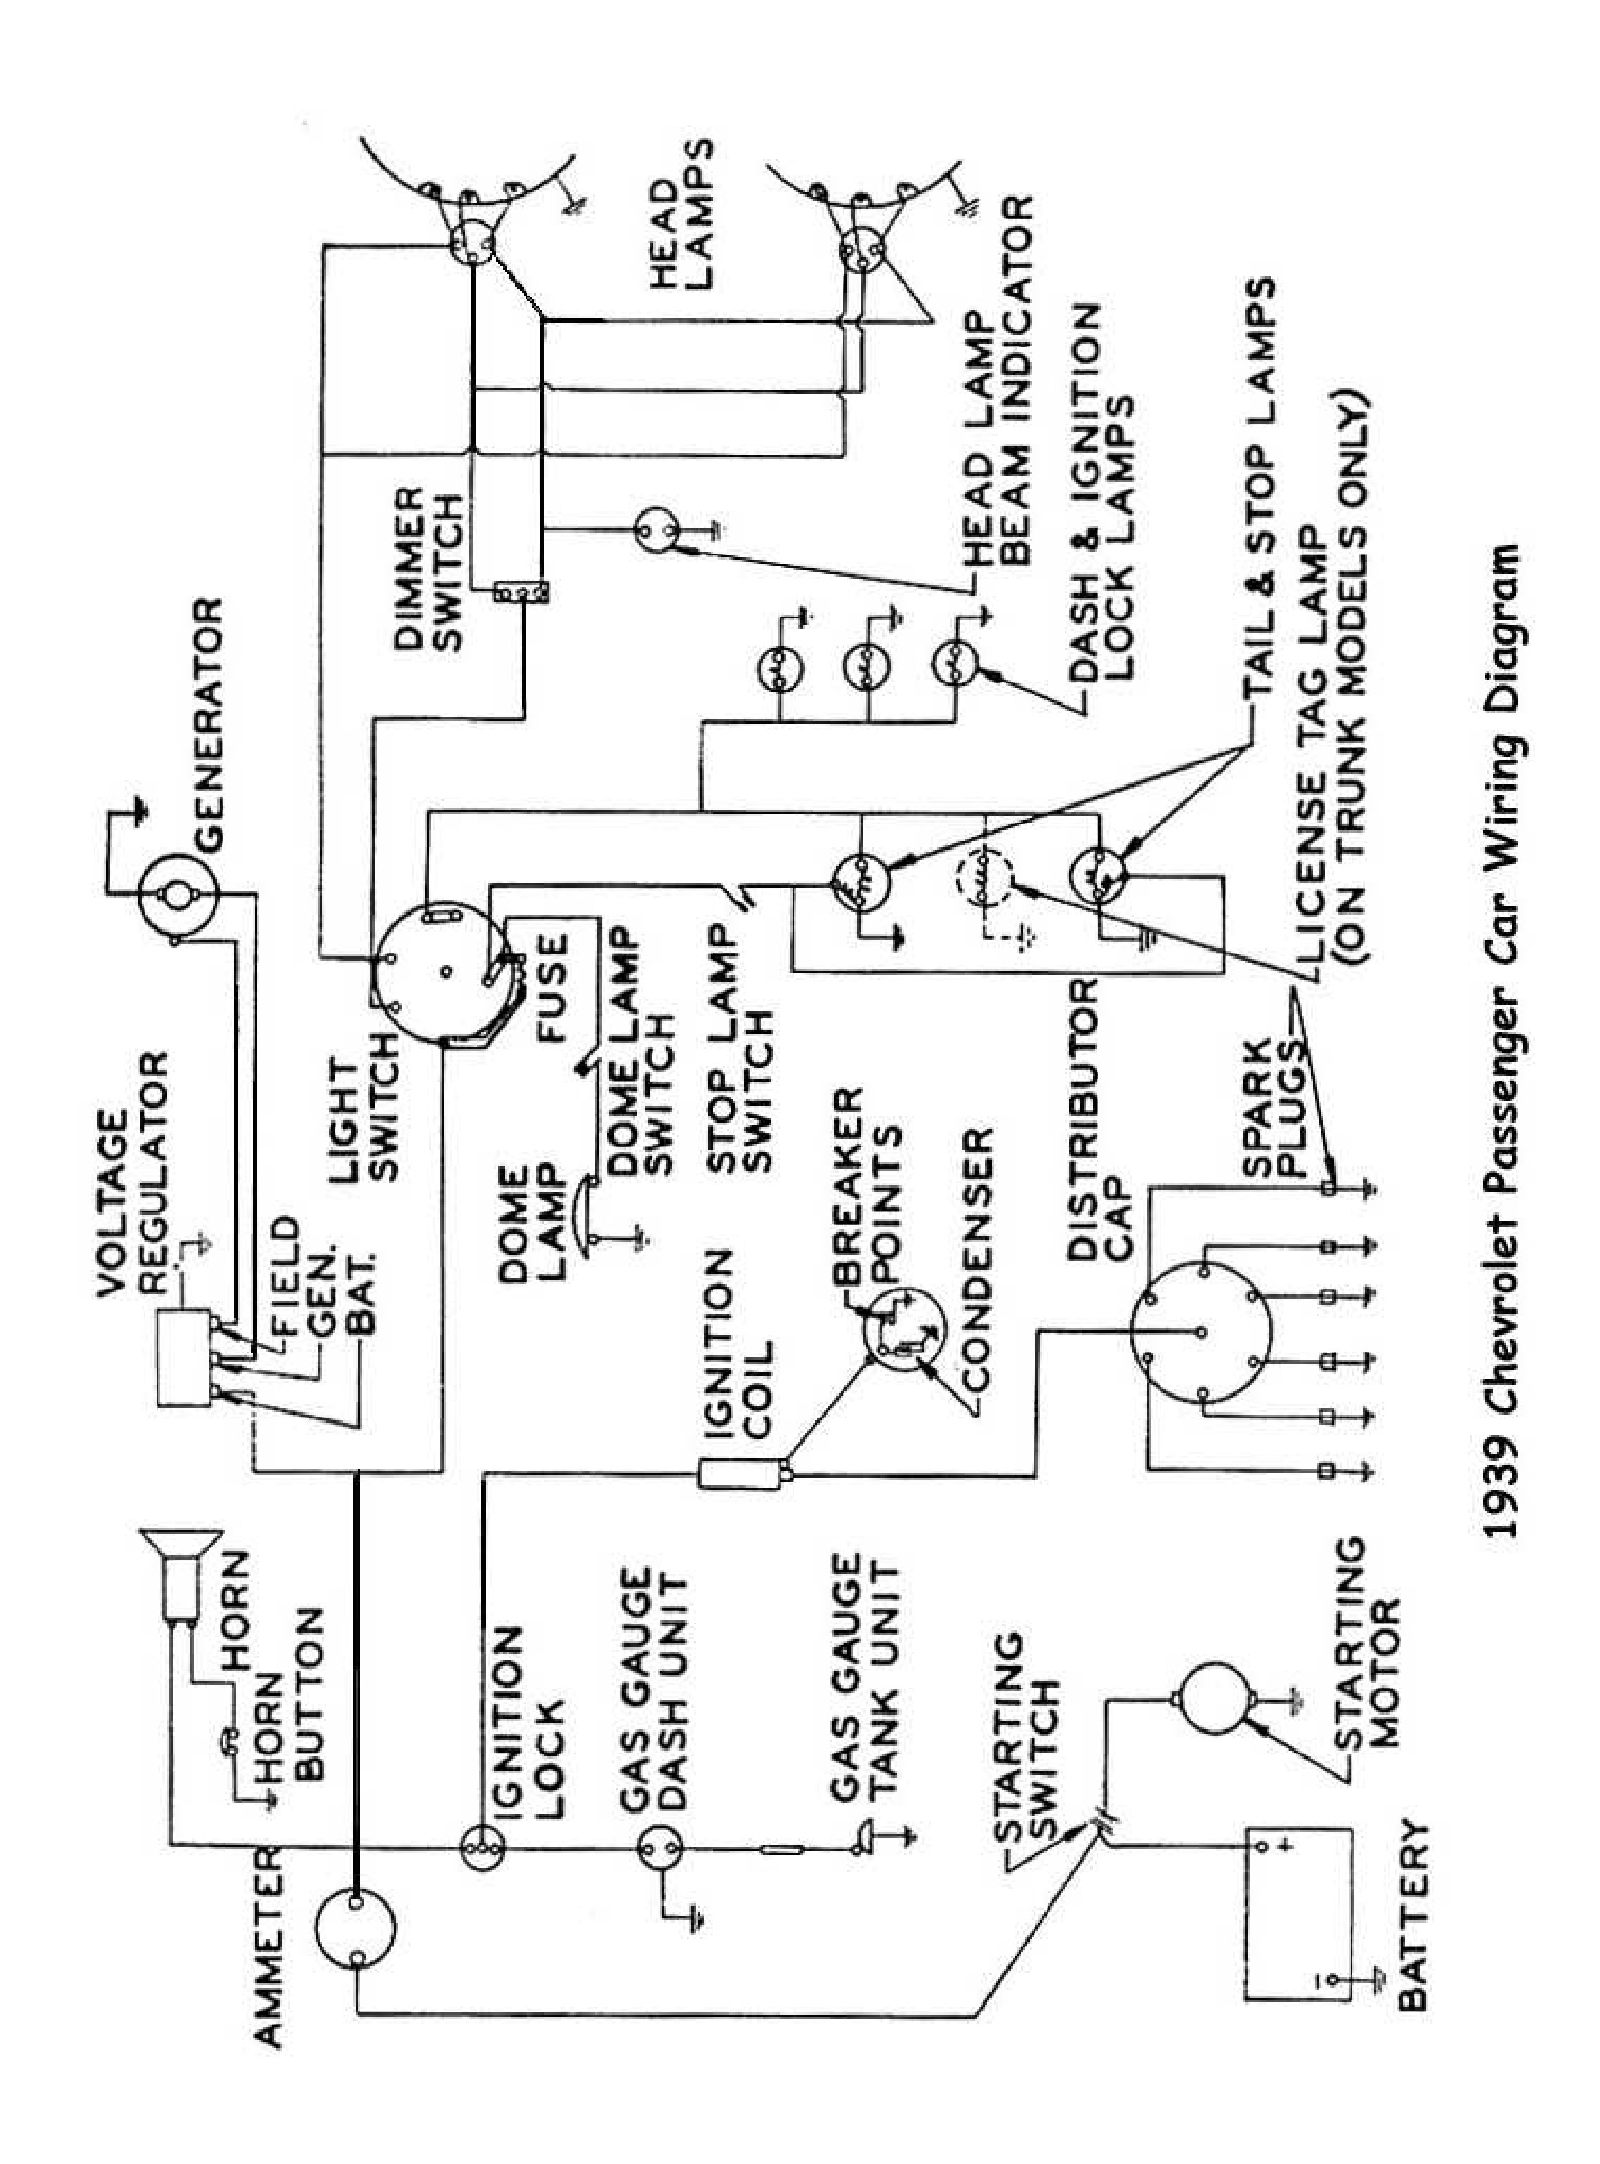 rv ac wiring diagram with Wiring on Magnum Enphase Battery Backup together with Obd2 Wiring Diagram Ls1 Ls1connector2   Wiring Diagram further Caldera Spa Wiring Diagram in addition 45044 Parts Of The Split Air Condioners Outdoor Unit furthermore Wiring Diagram For Garage Sub Panel.